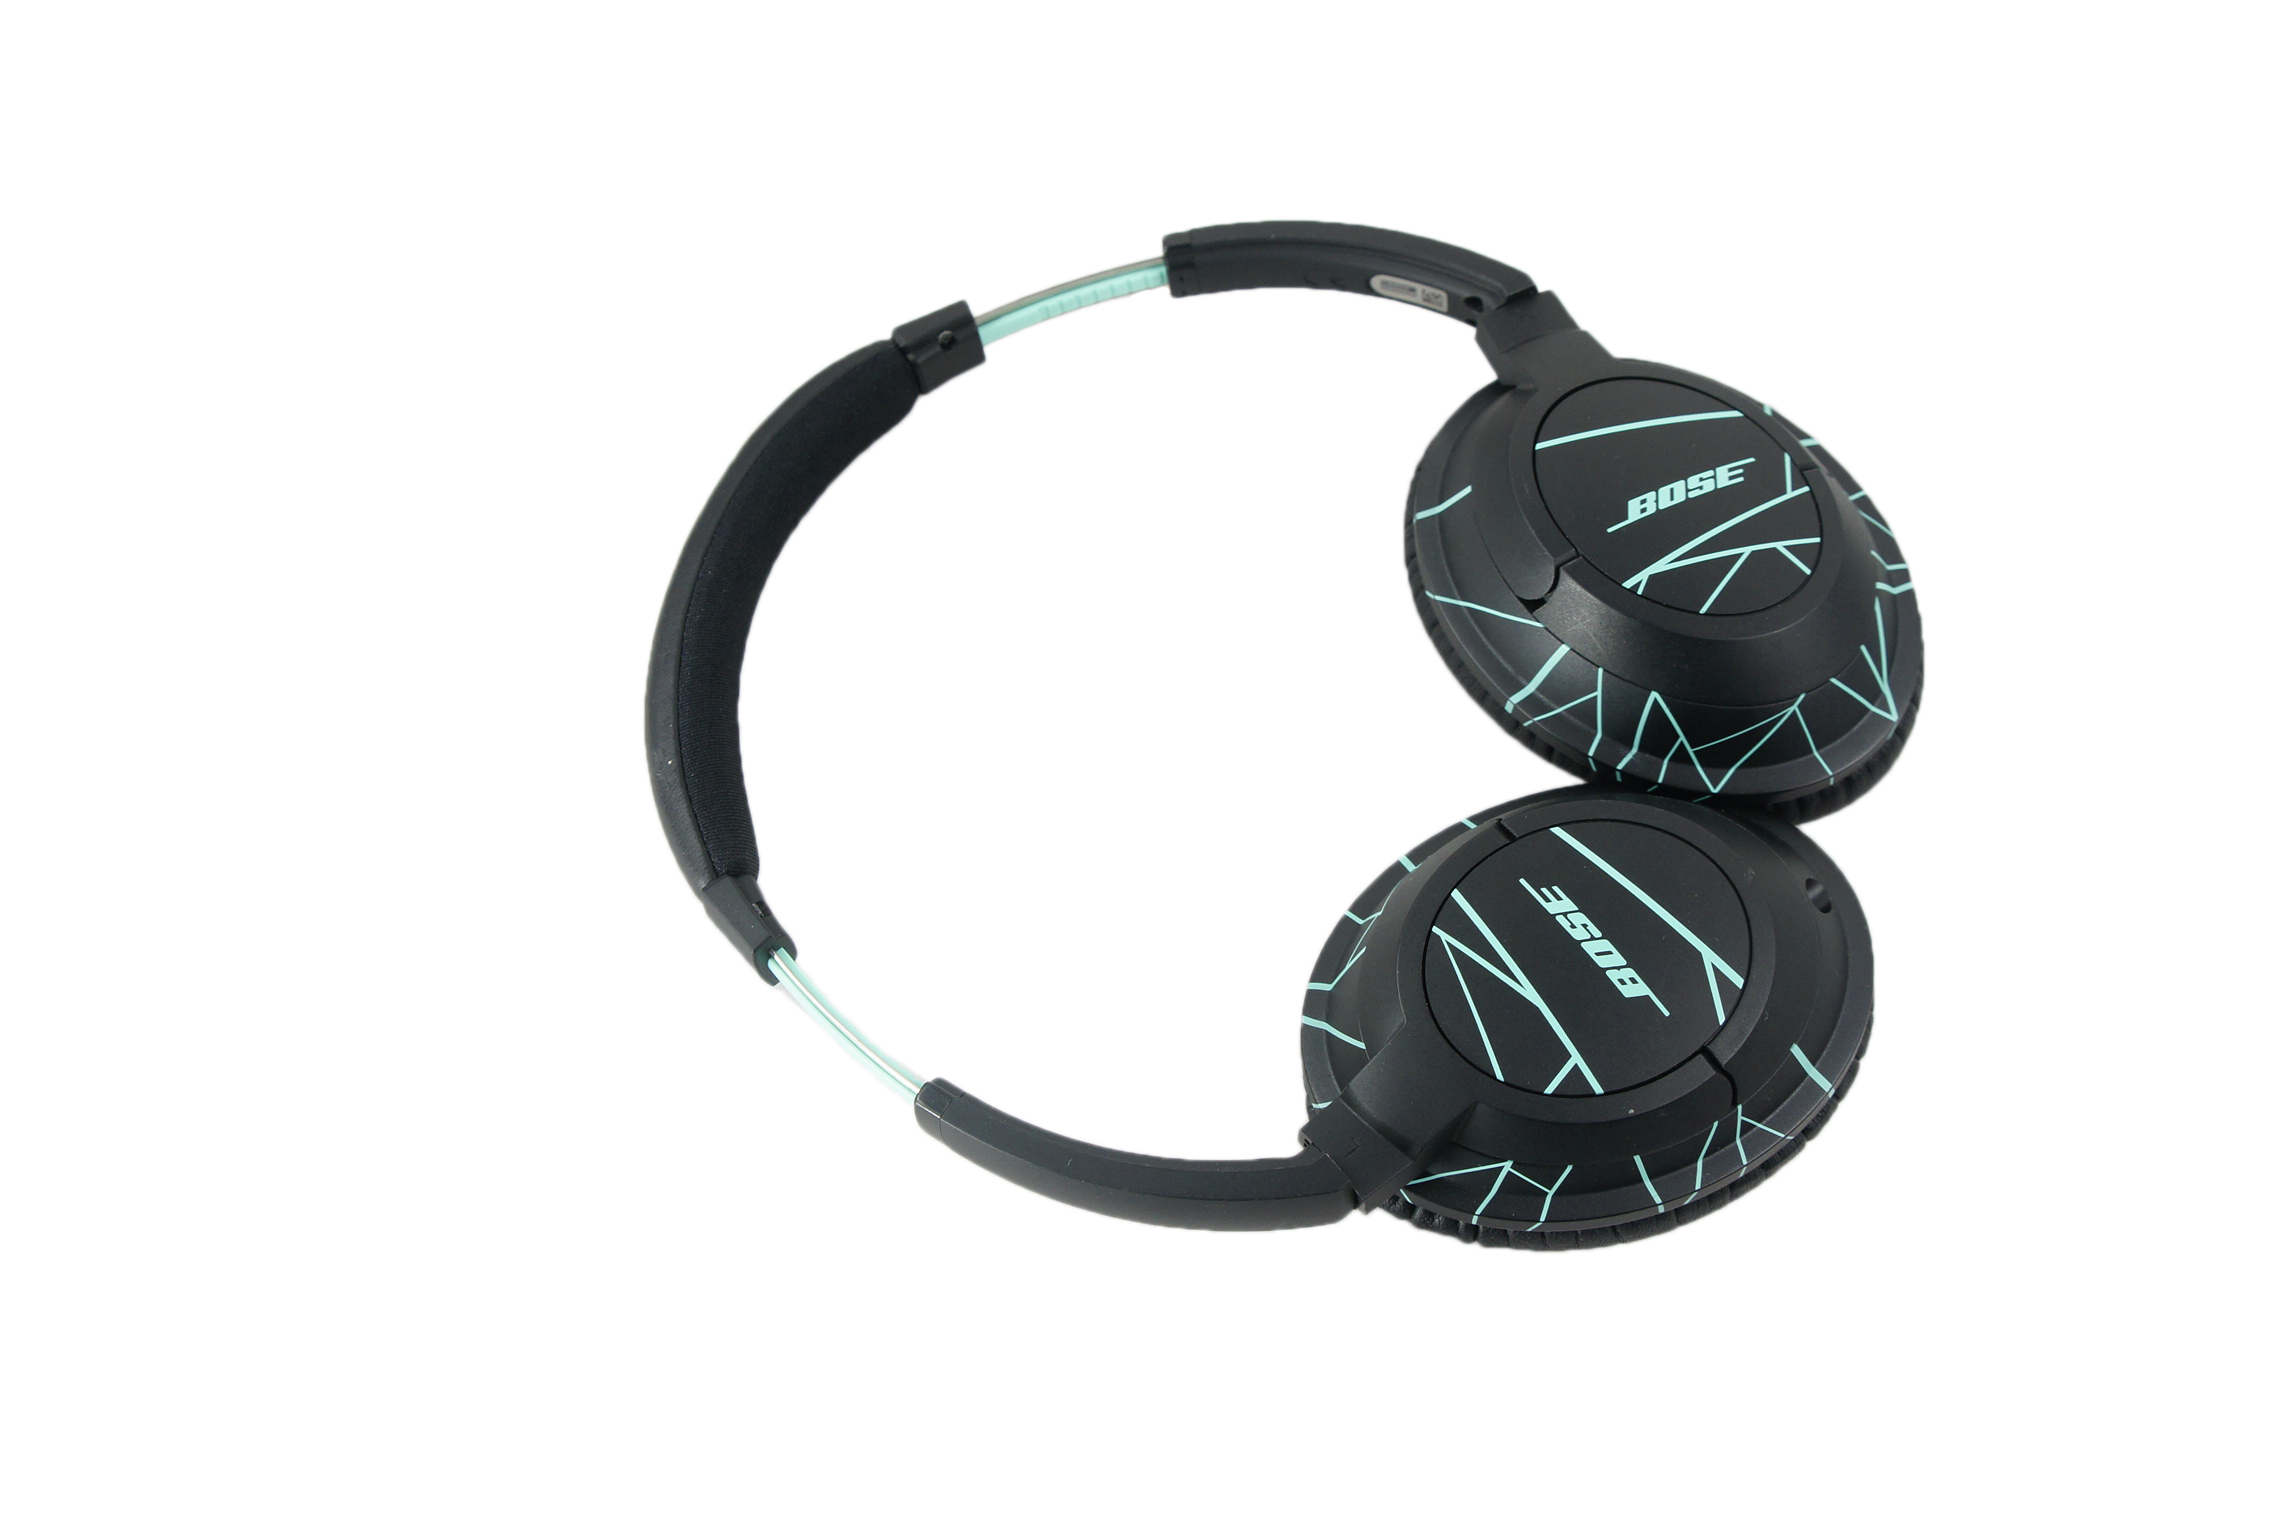 Bose_SoundTrue_Kopfhorer_Green_Edition_09